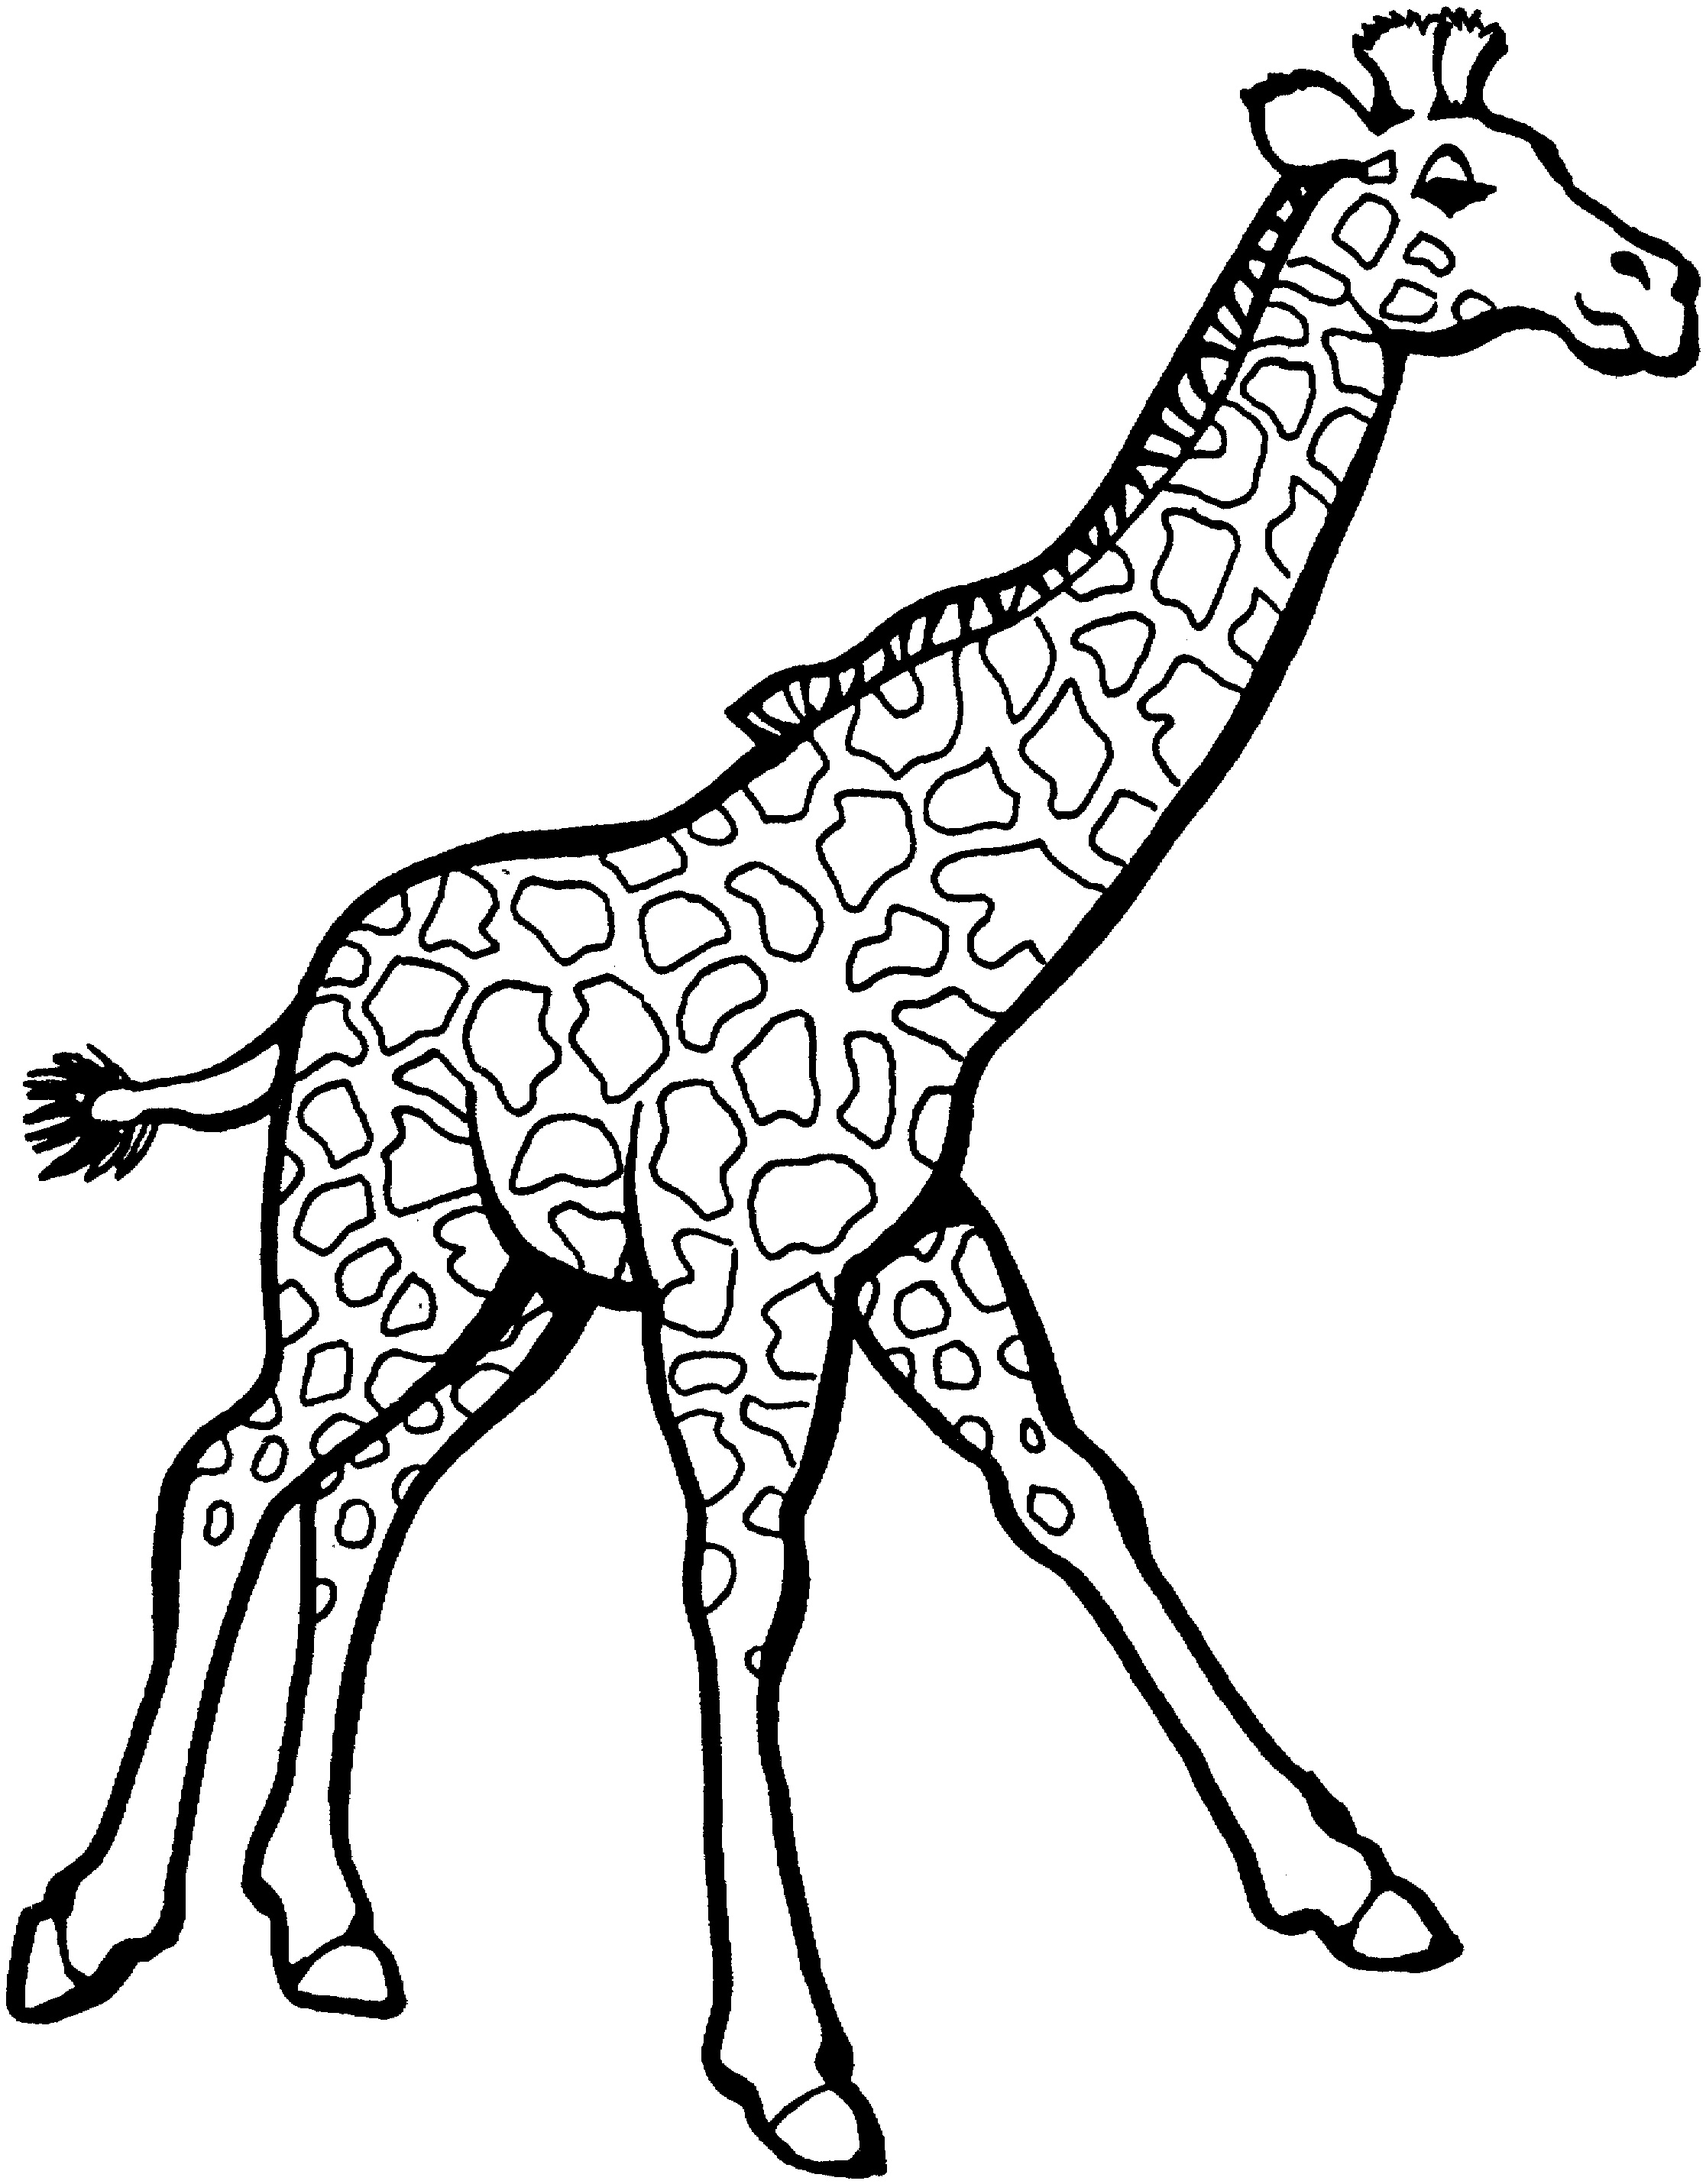 coloring pages easy to print - free printable giraffe coloring pages for kids